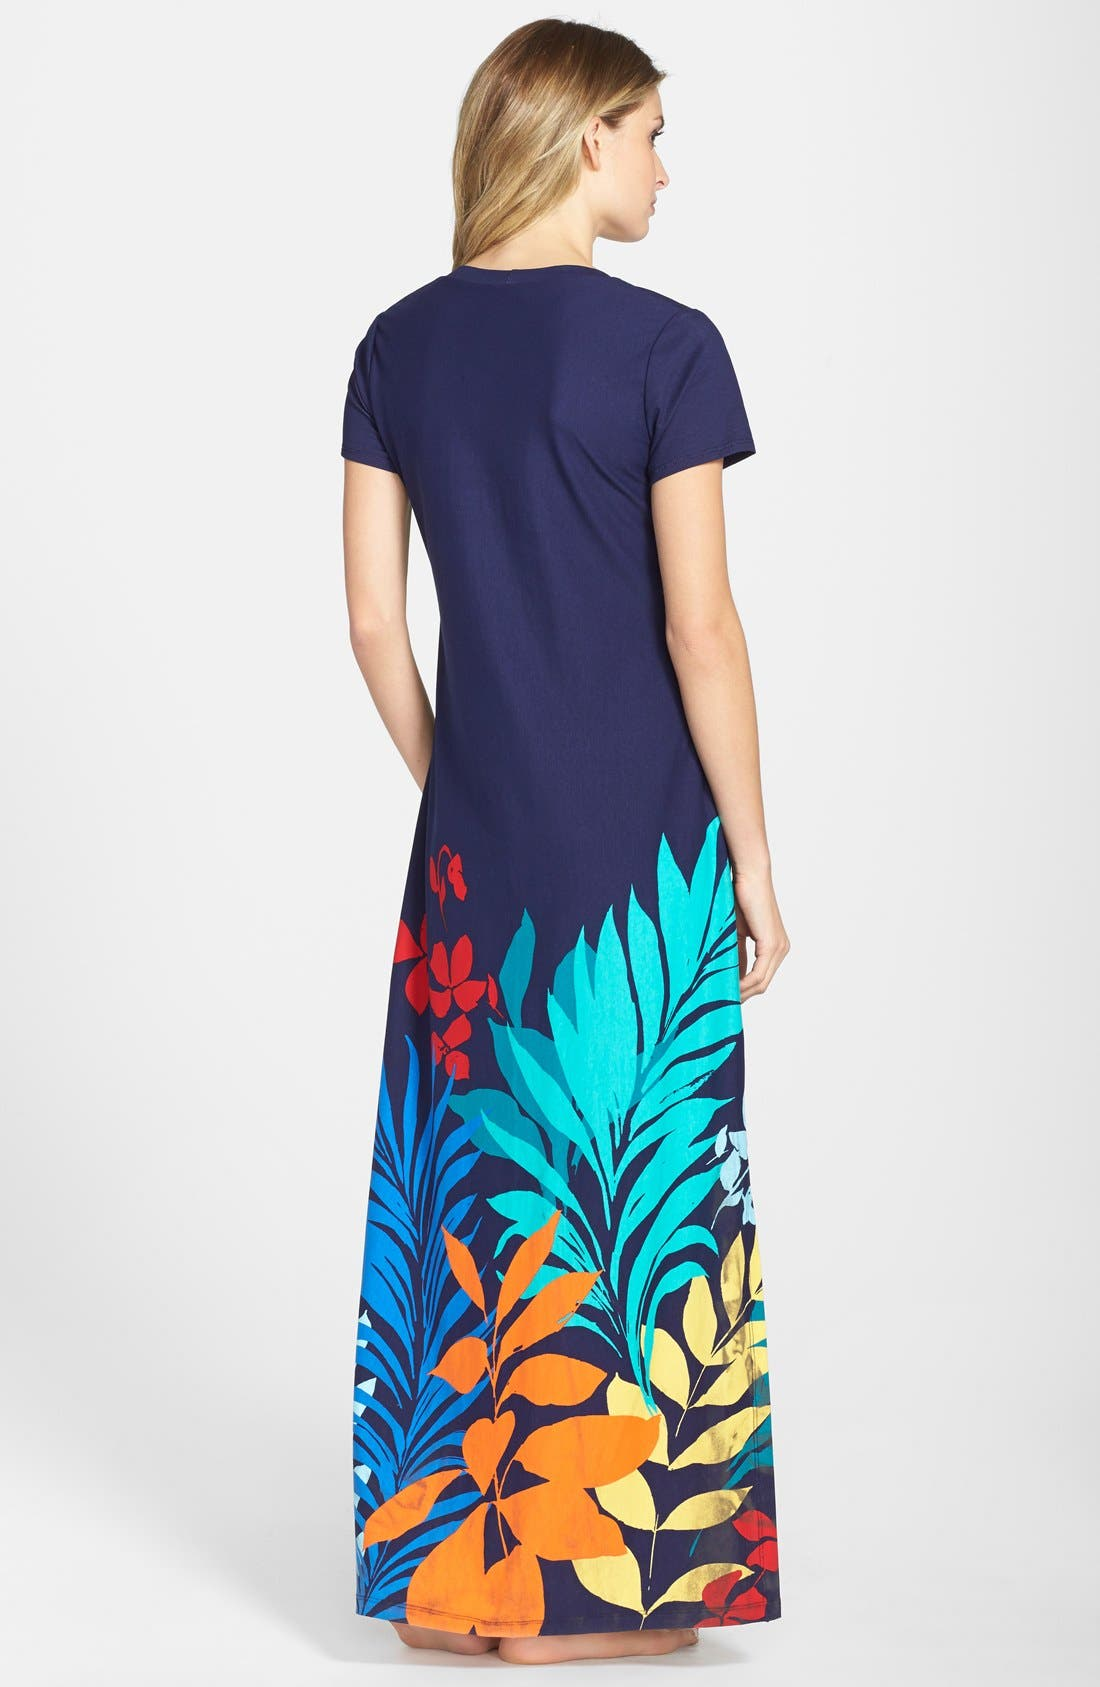 TOMMY BAHAMA,                             'Tropical Leaf' Maxi Dress,                             Alternate thumbnail 2, color,                             400